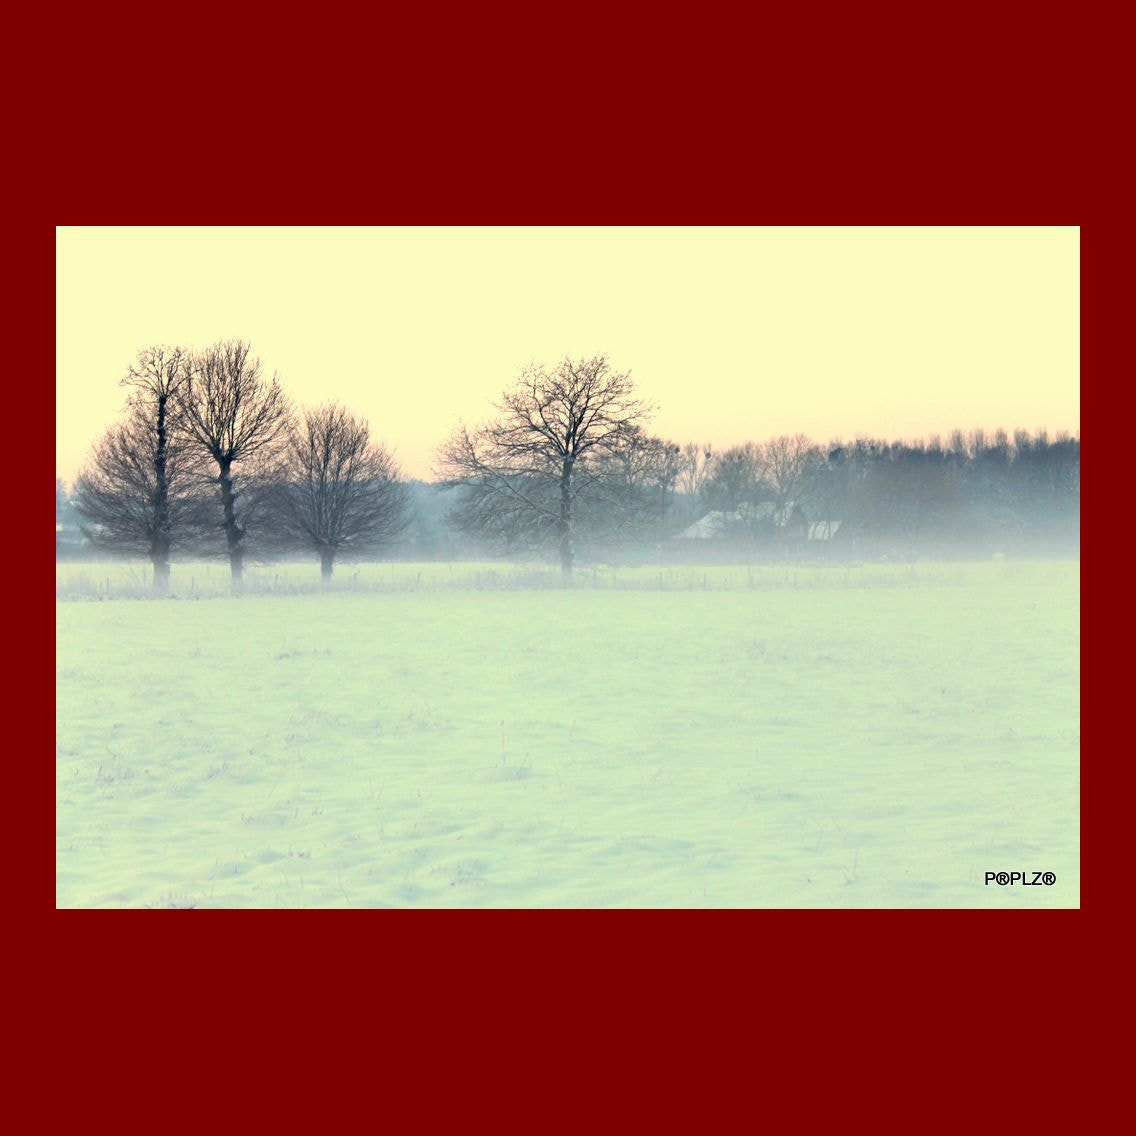 Photograph Snowy Morning in Flandres by Carl Lapiere on 500px